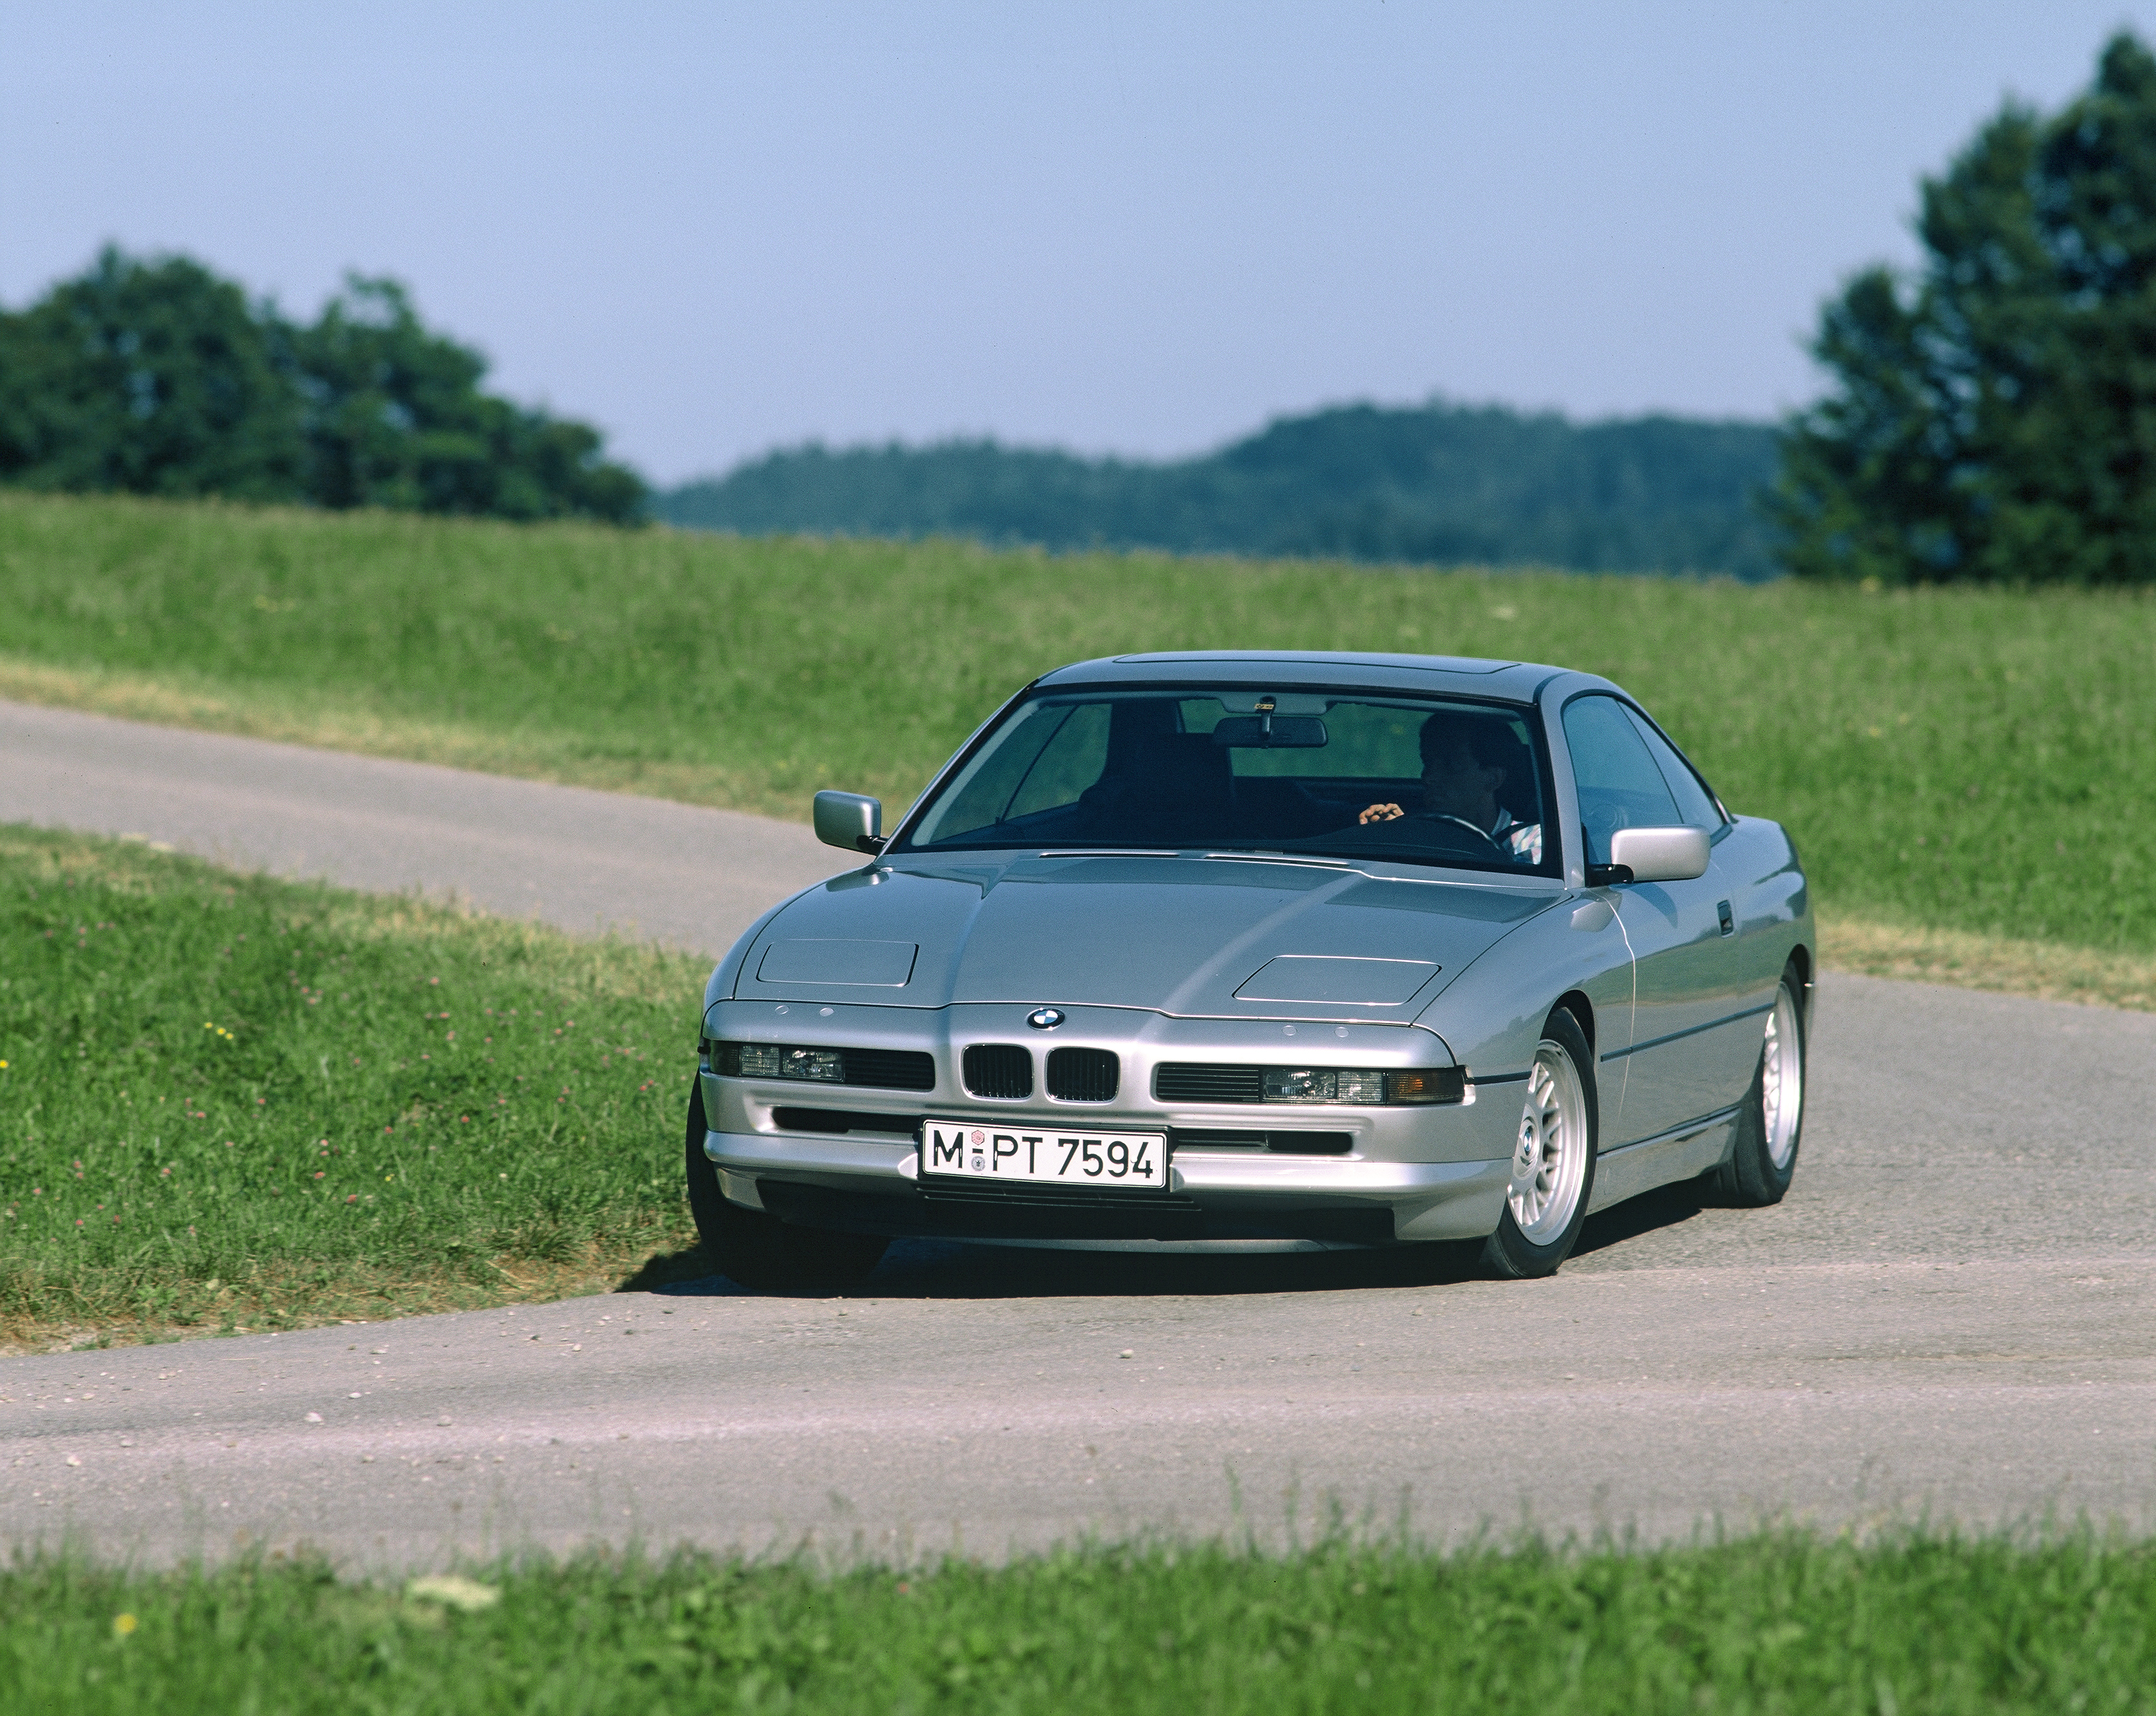 Car eighth series BMW 850i carrier of the highest achievements of world car industry (1990)